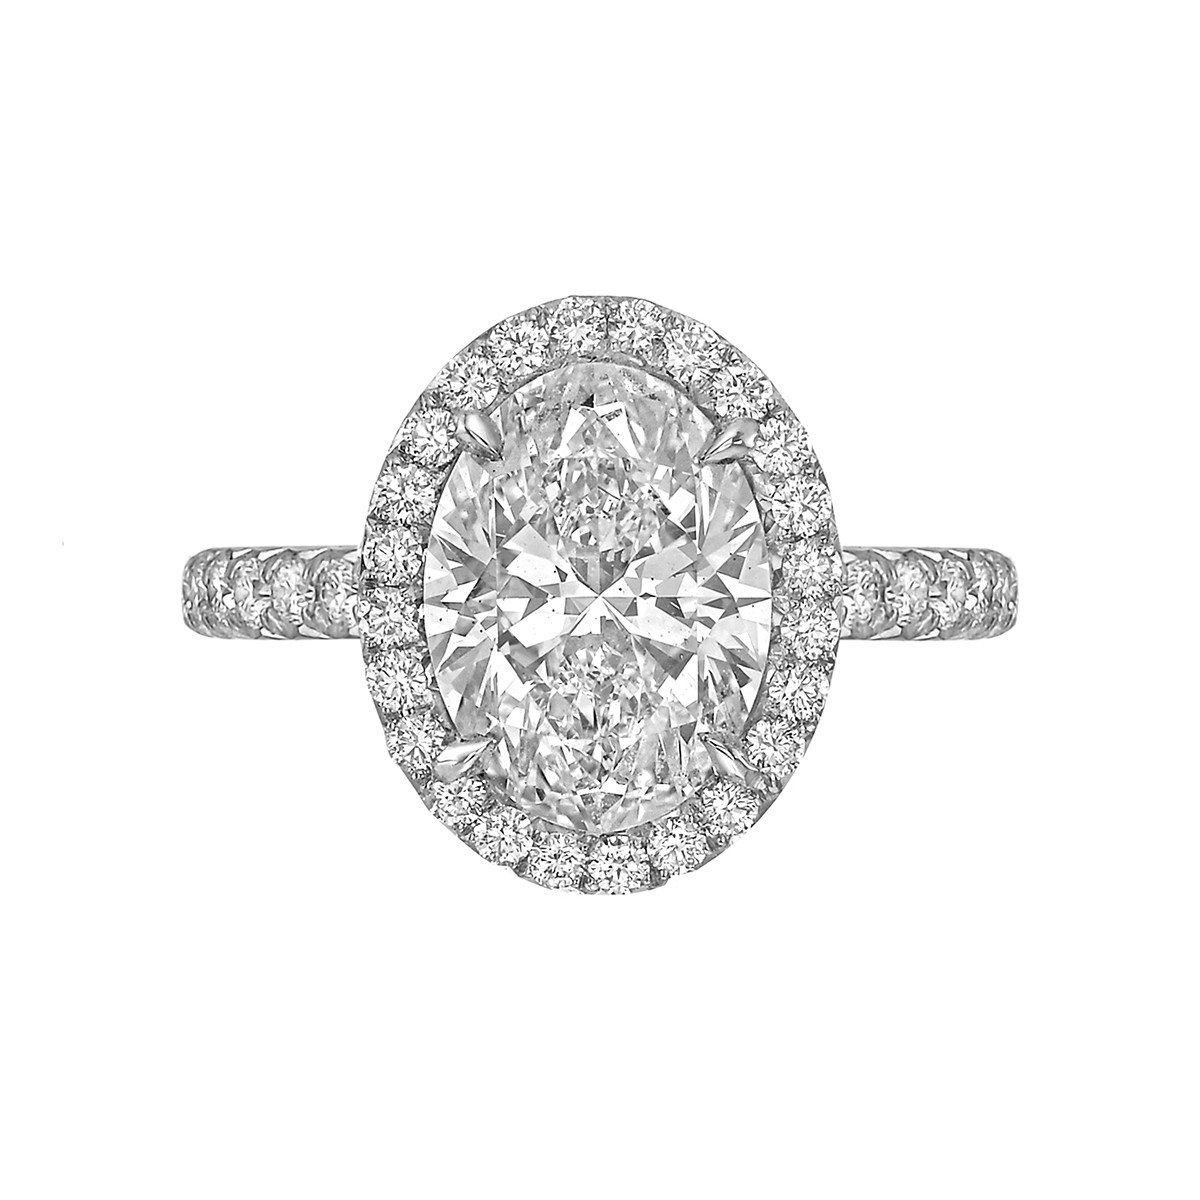 "3.01 Carat Oval Brilliant-Cut Diamond ""Oriana"" Ring"